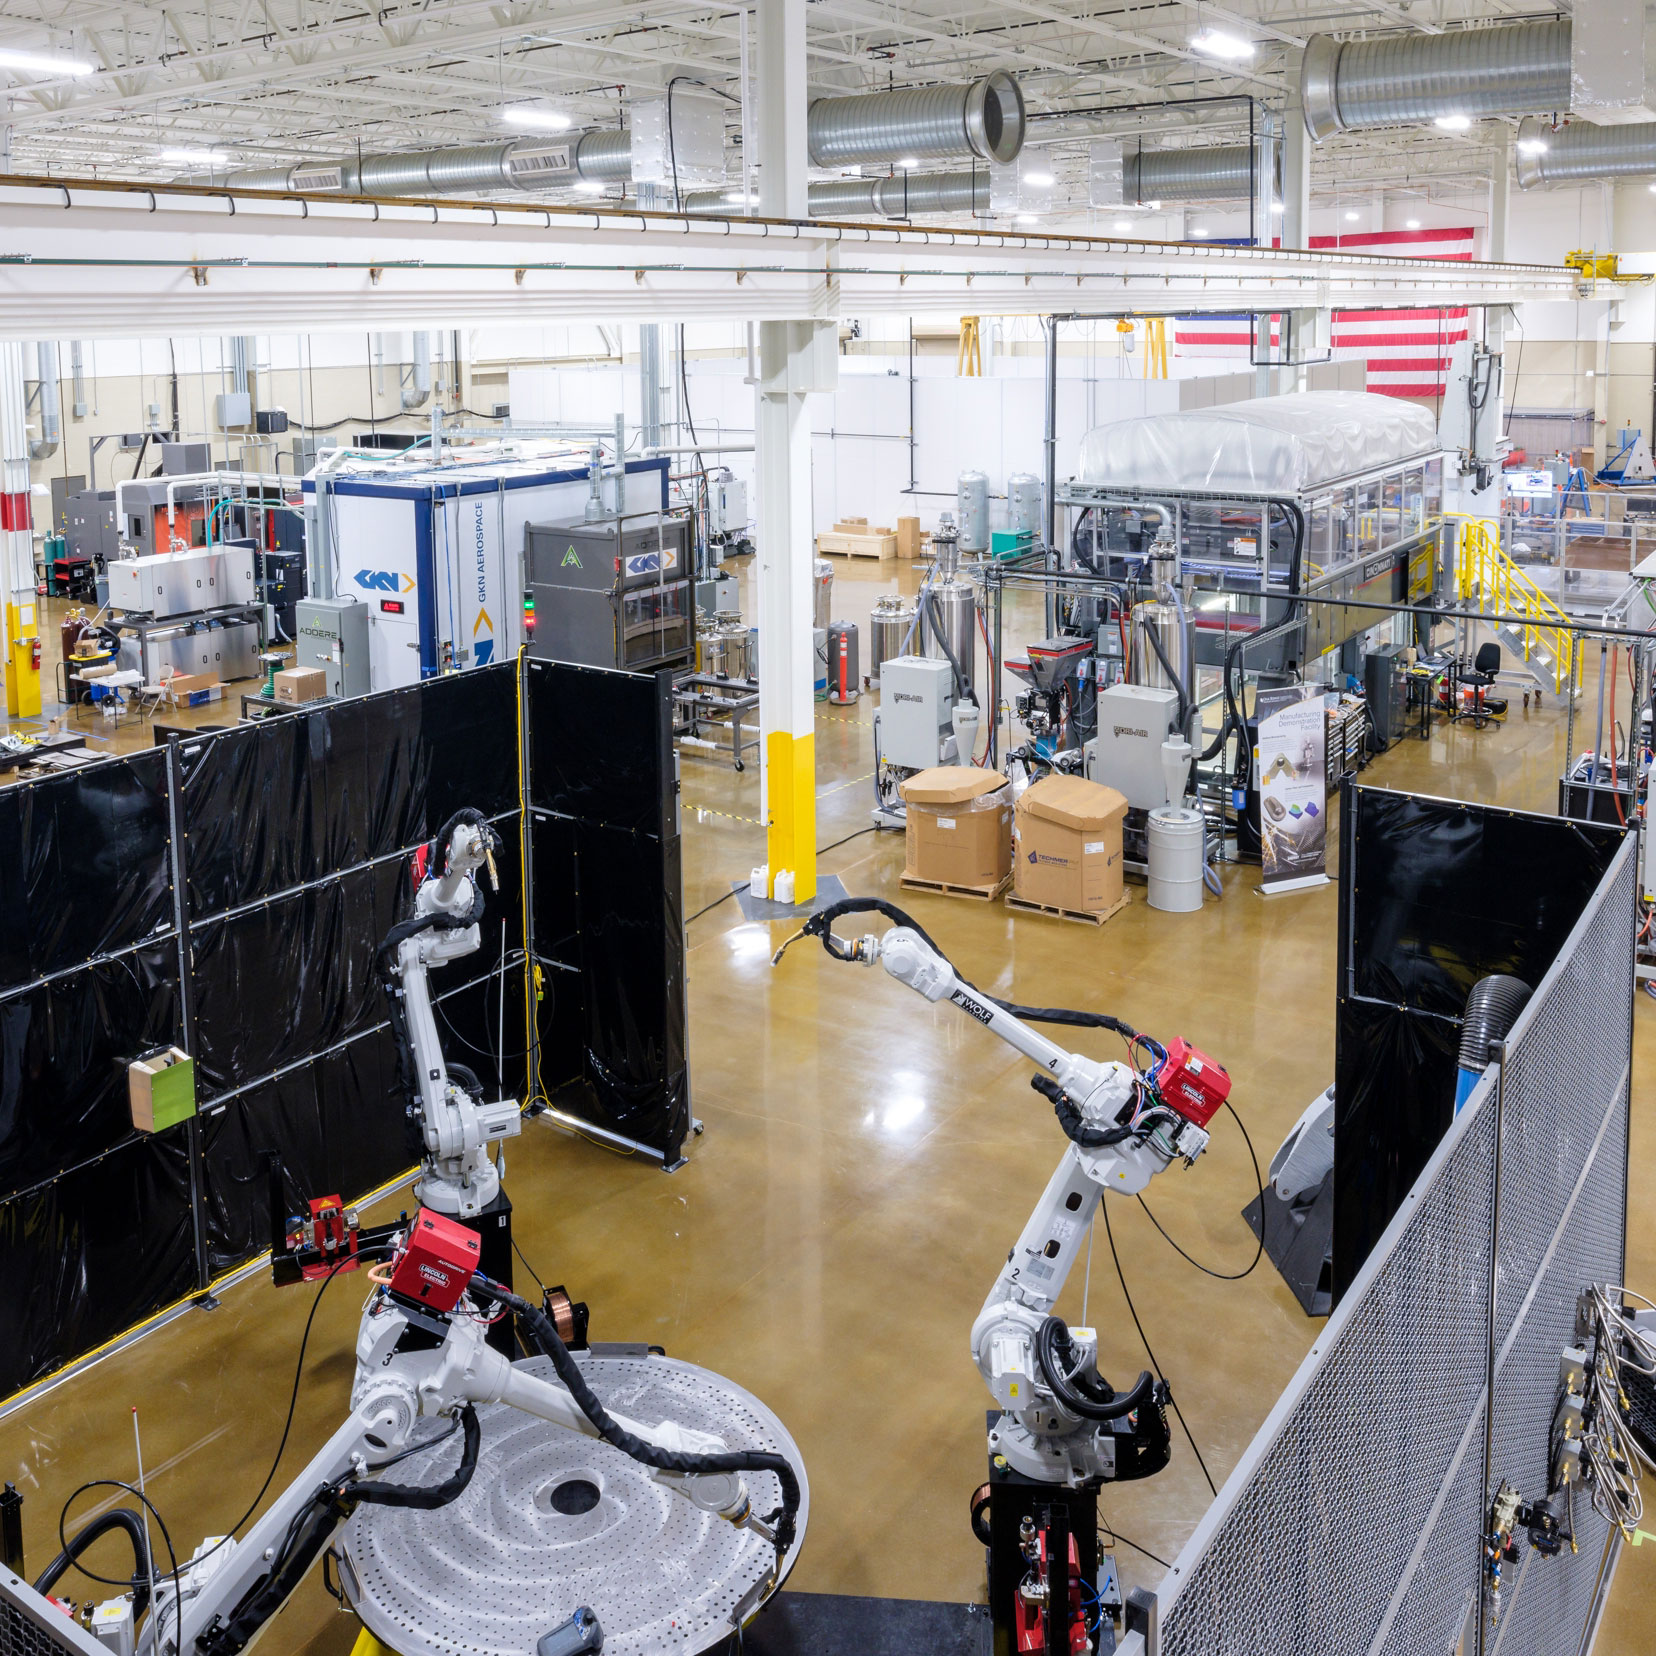 Image of the Manufacturing Demonstration Facility in Knoxville, TN which shows large ware-house facility with numerous large robotic-like machines. The floor is a light colored wood and the ceiling is while with bright long lights.